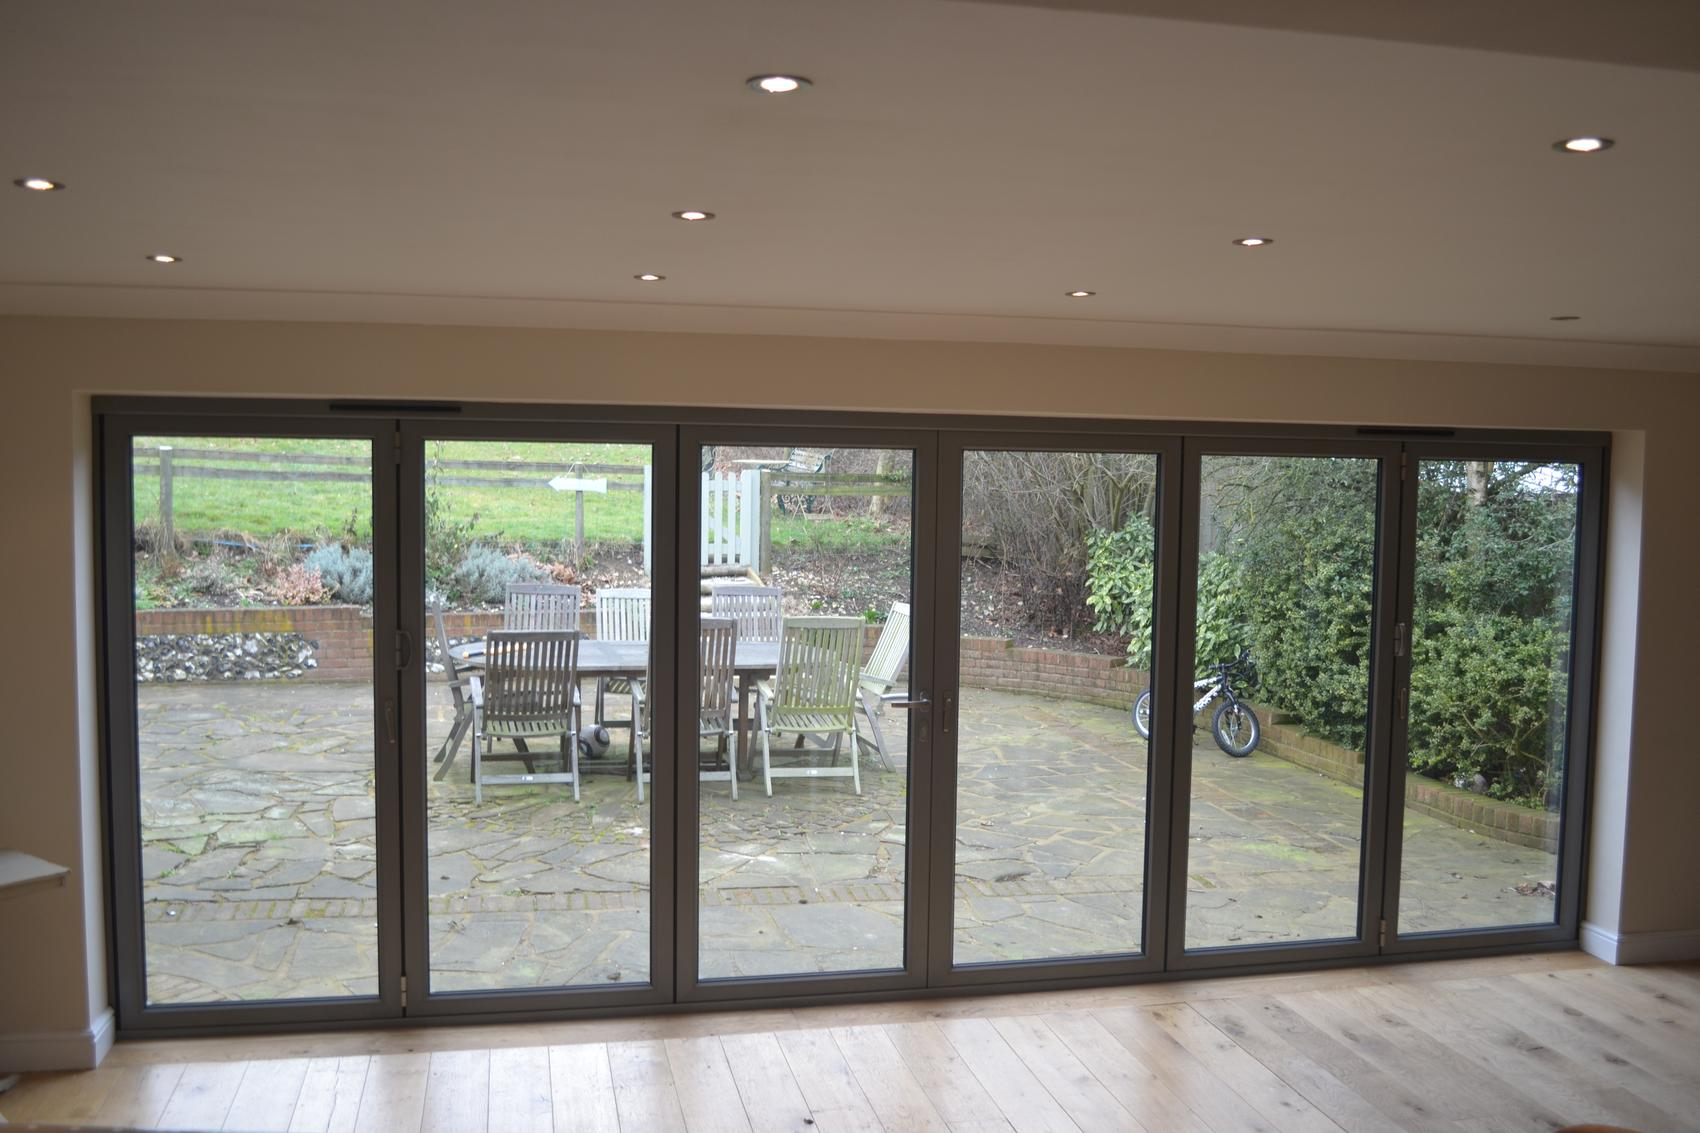 6 panel bifold doors - Express Supply Only Double Glazing Service